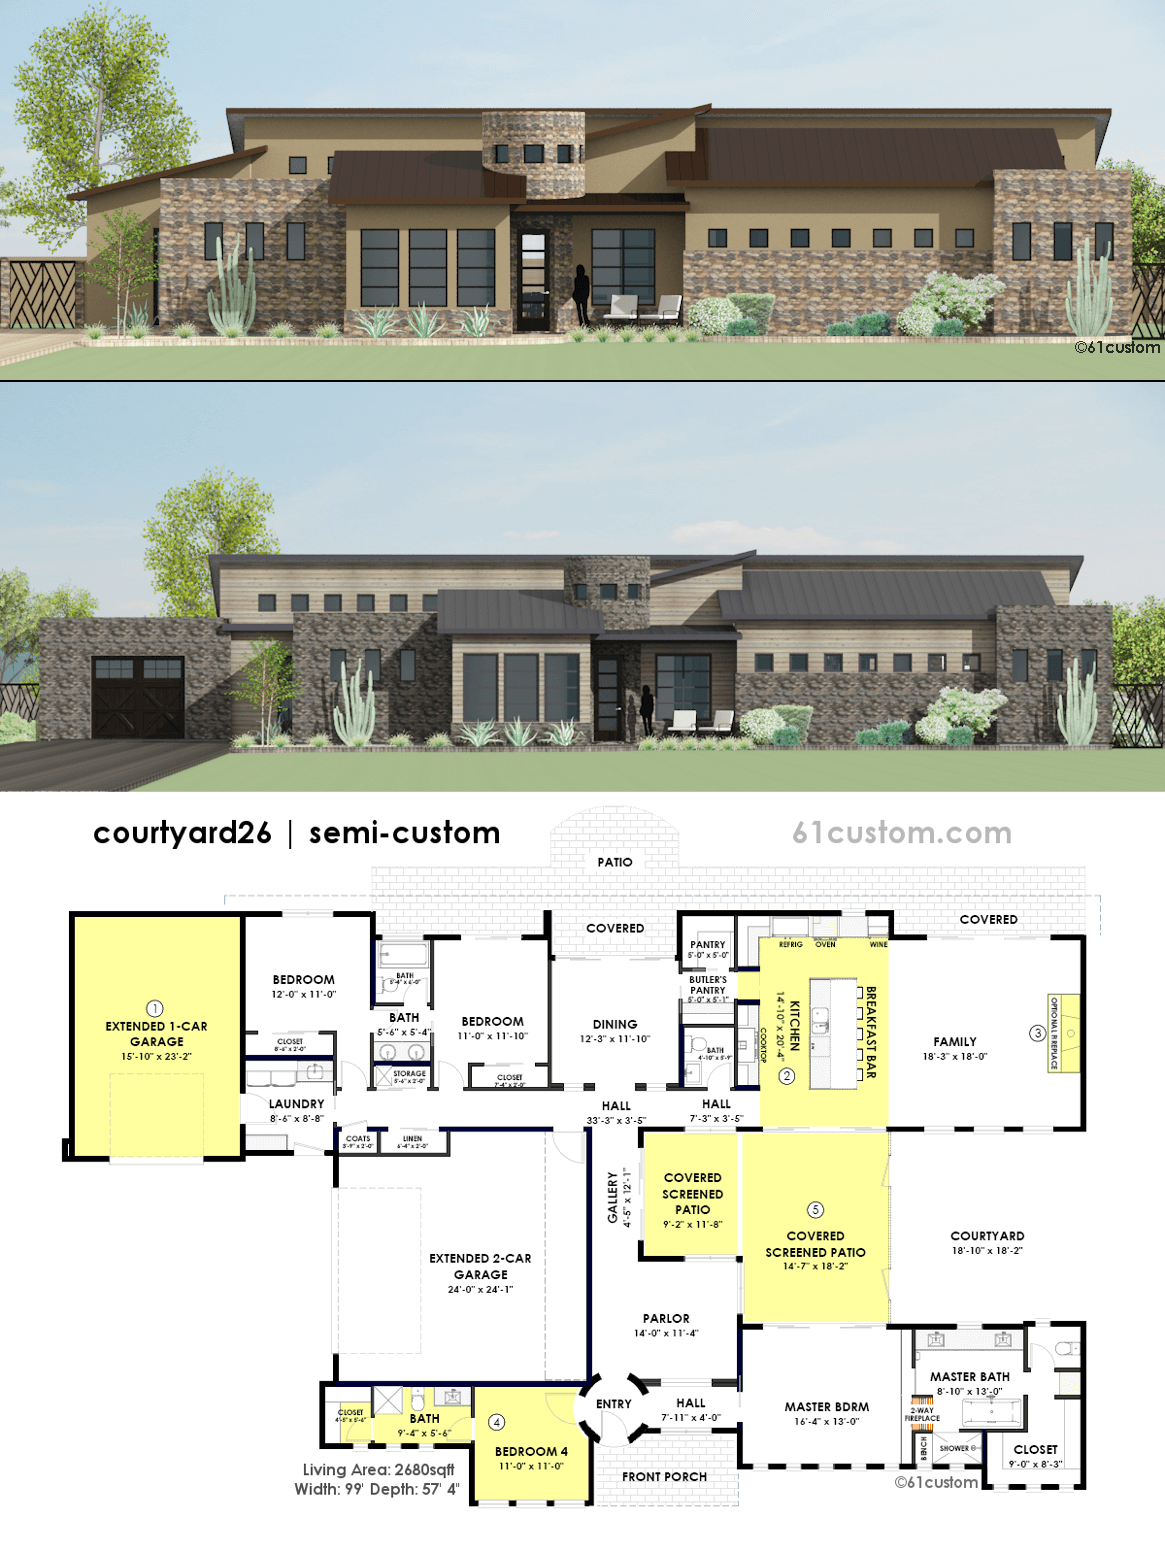 Contemporary side courtyard house plan 61custom for Modern custom homes